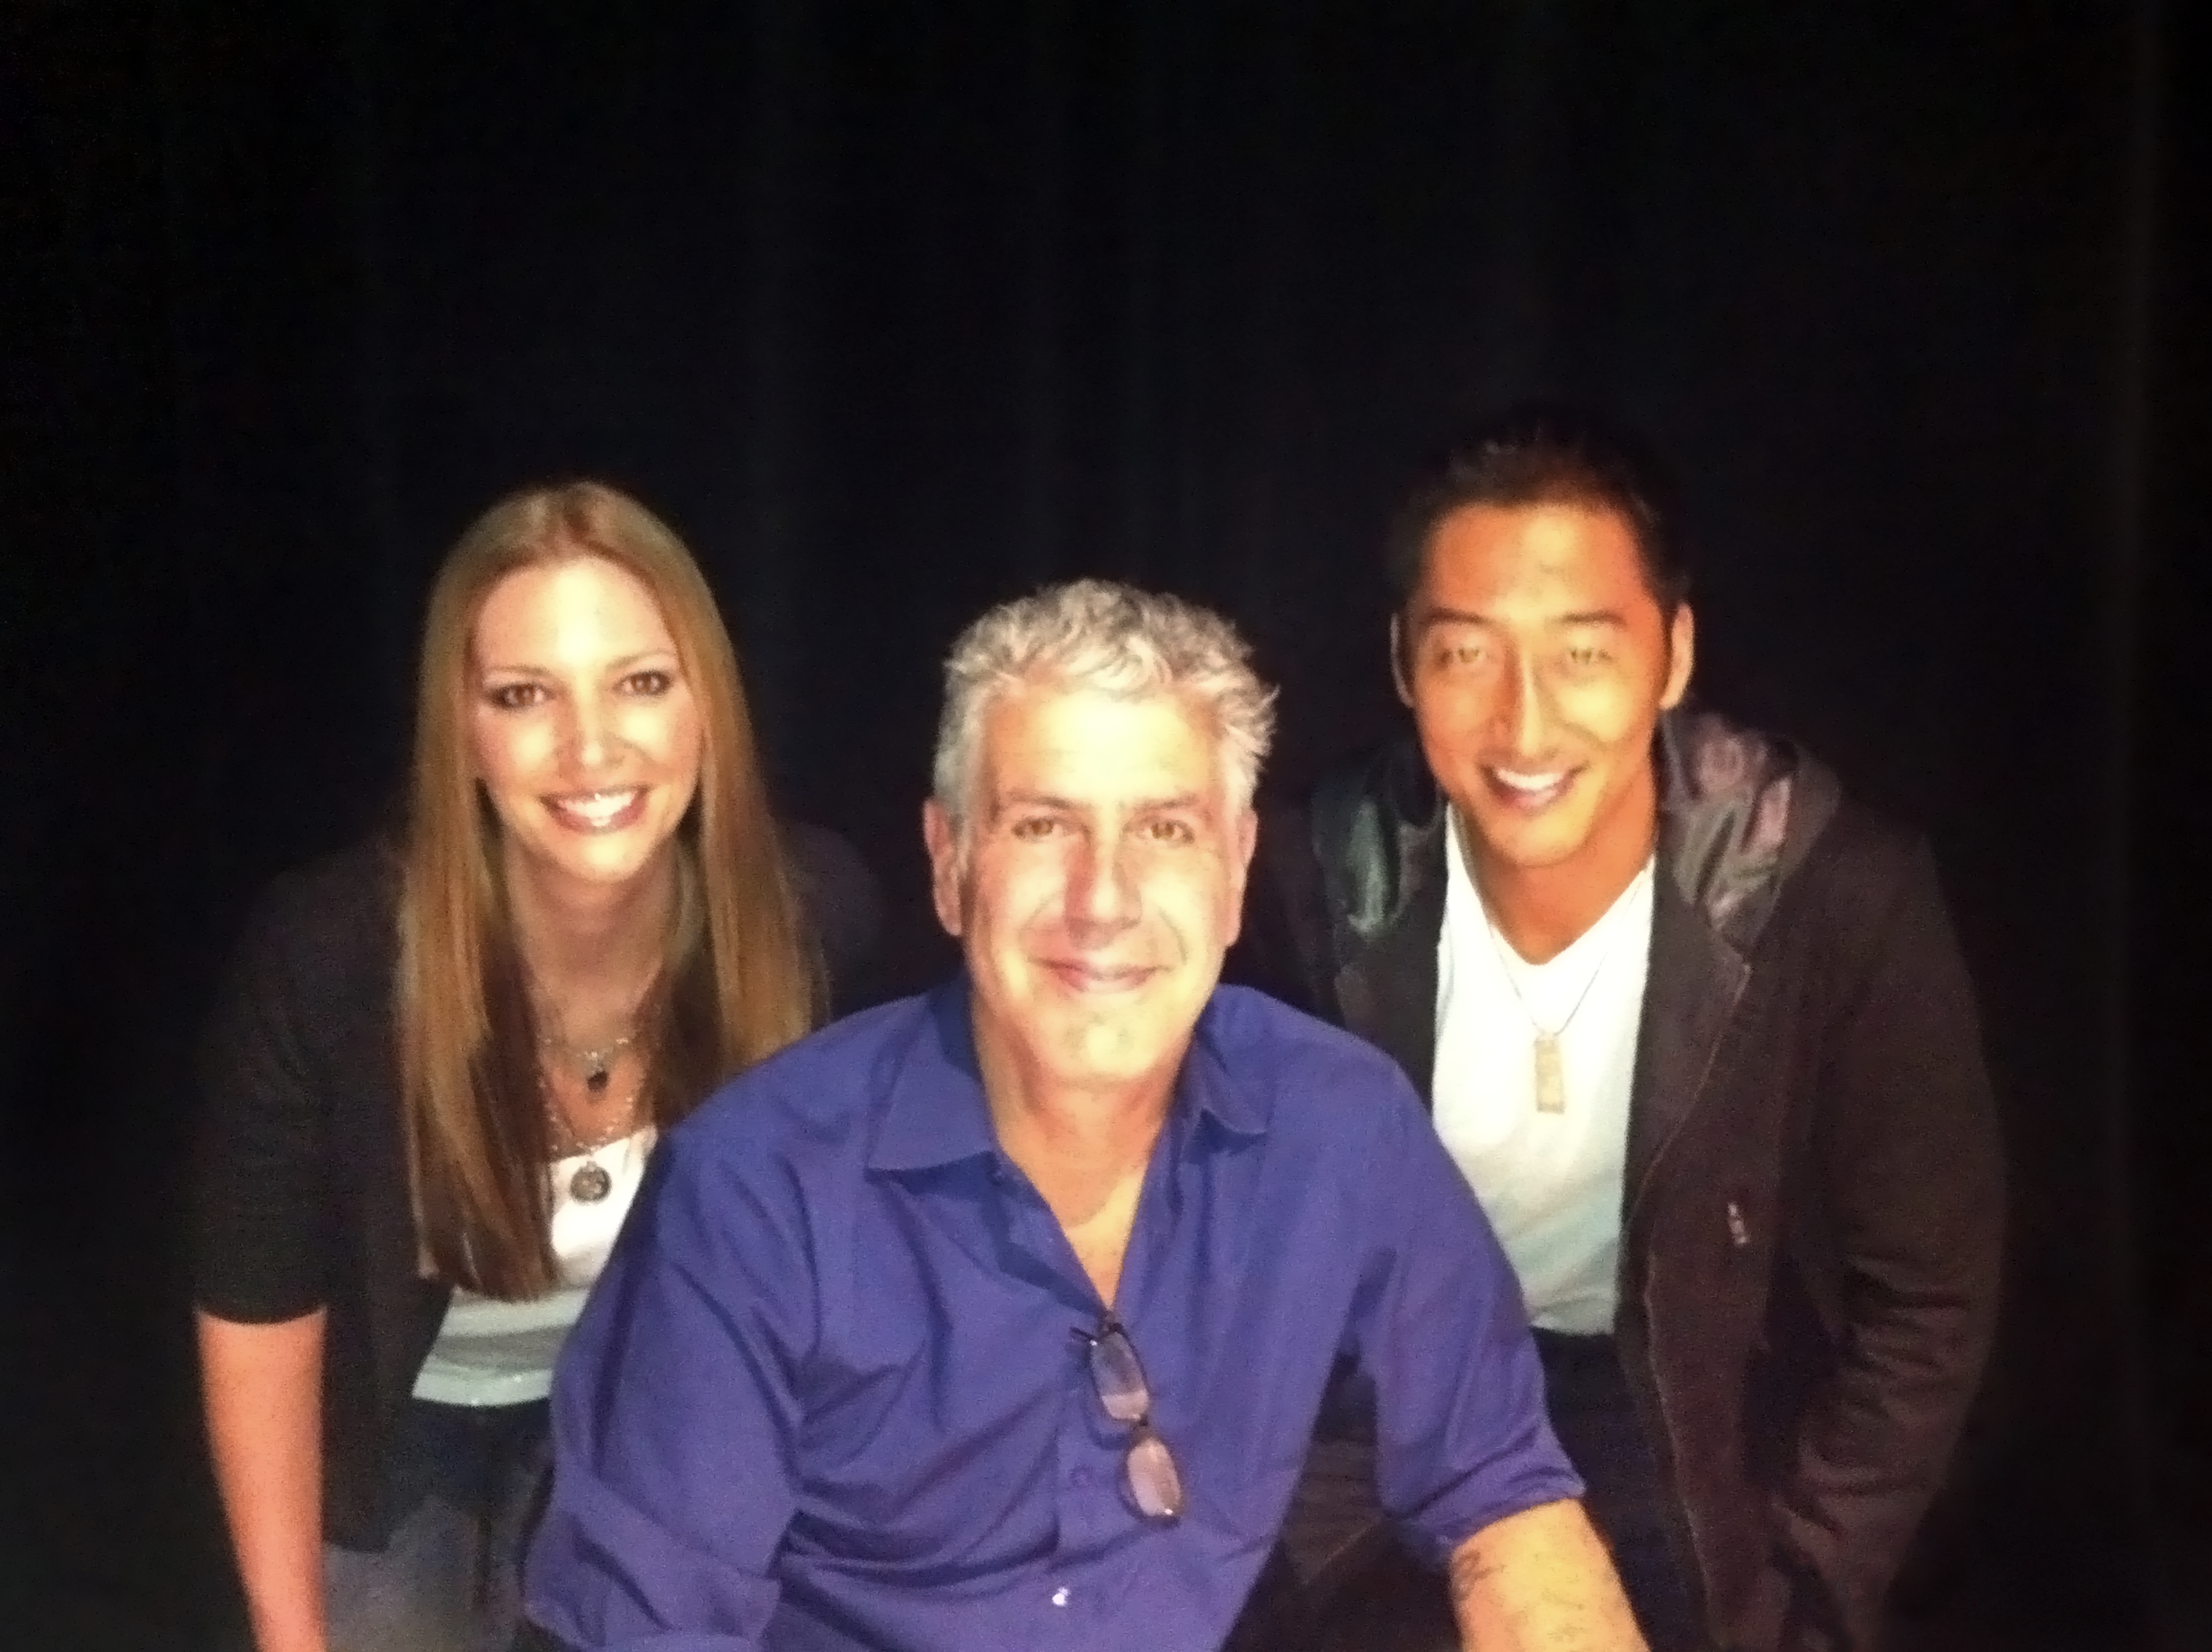 My Evening with Anthony Bourdain